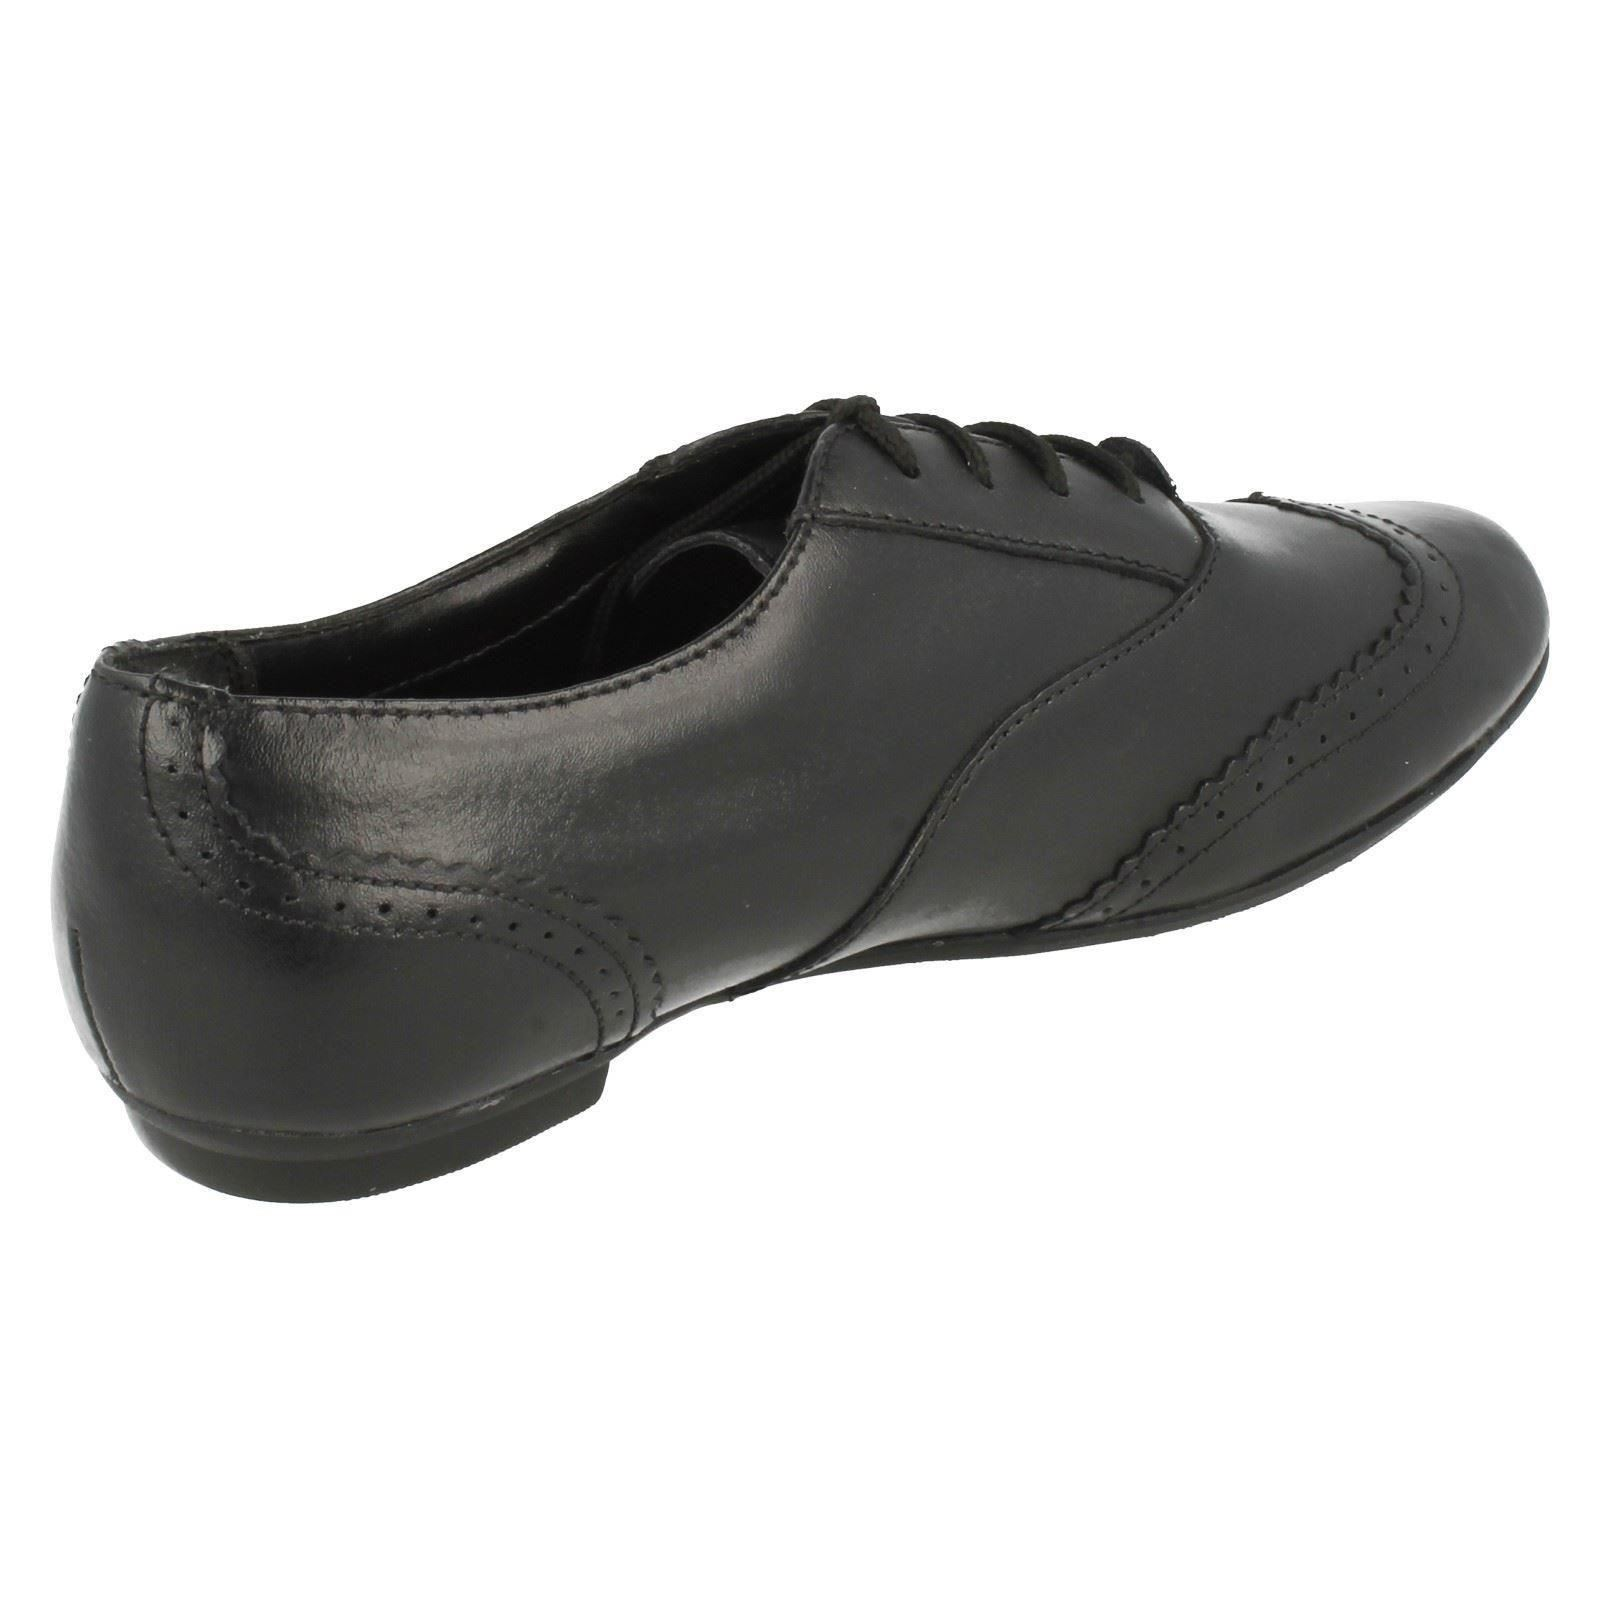 Senior Girls Tizz Honey Bootleg by Clarks Brogue School Shoes